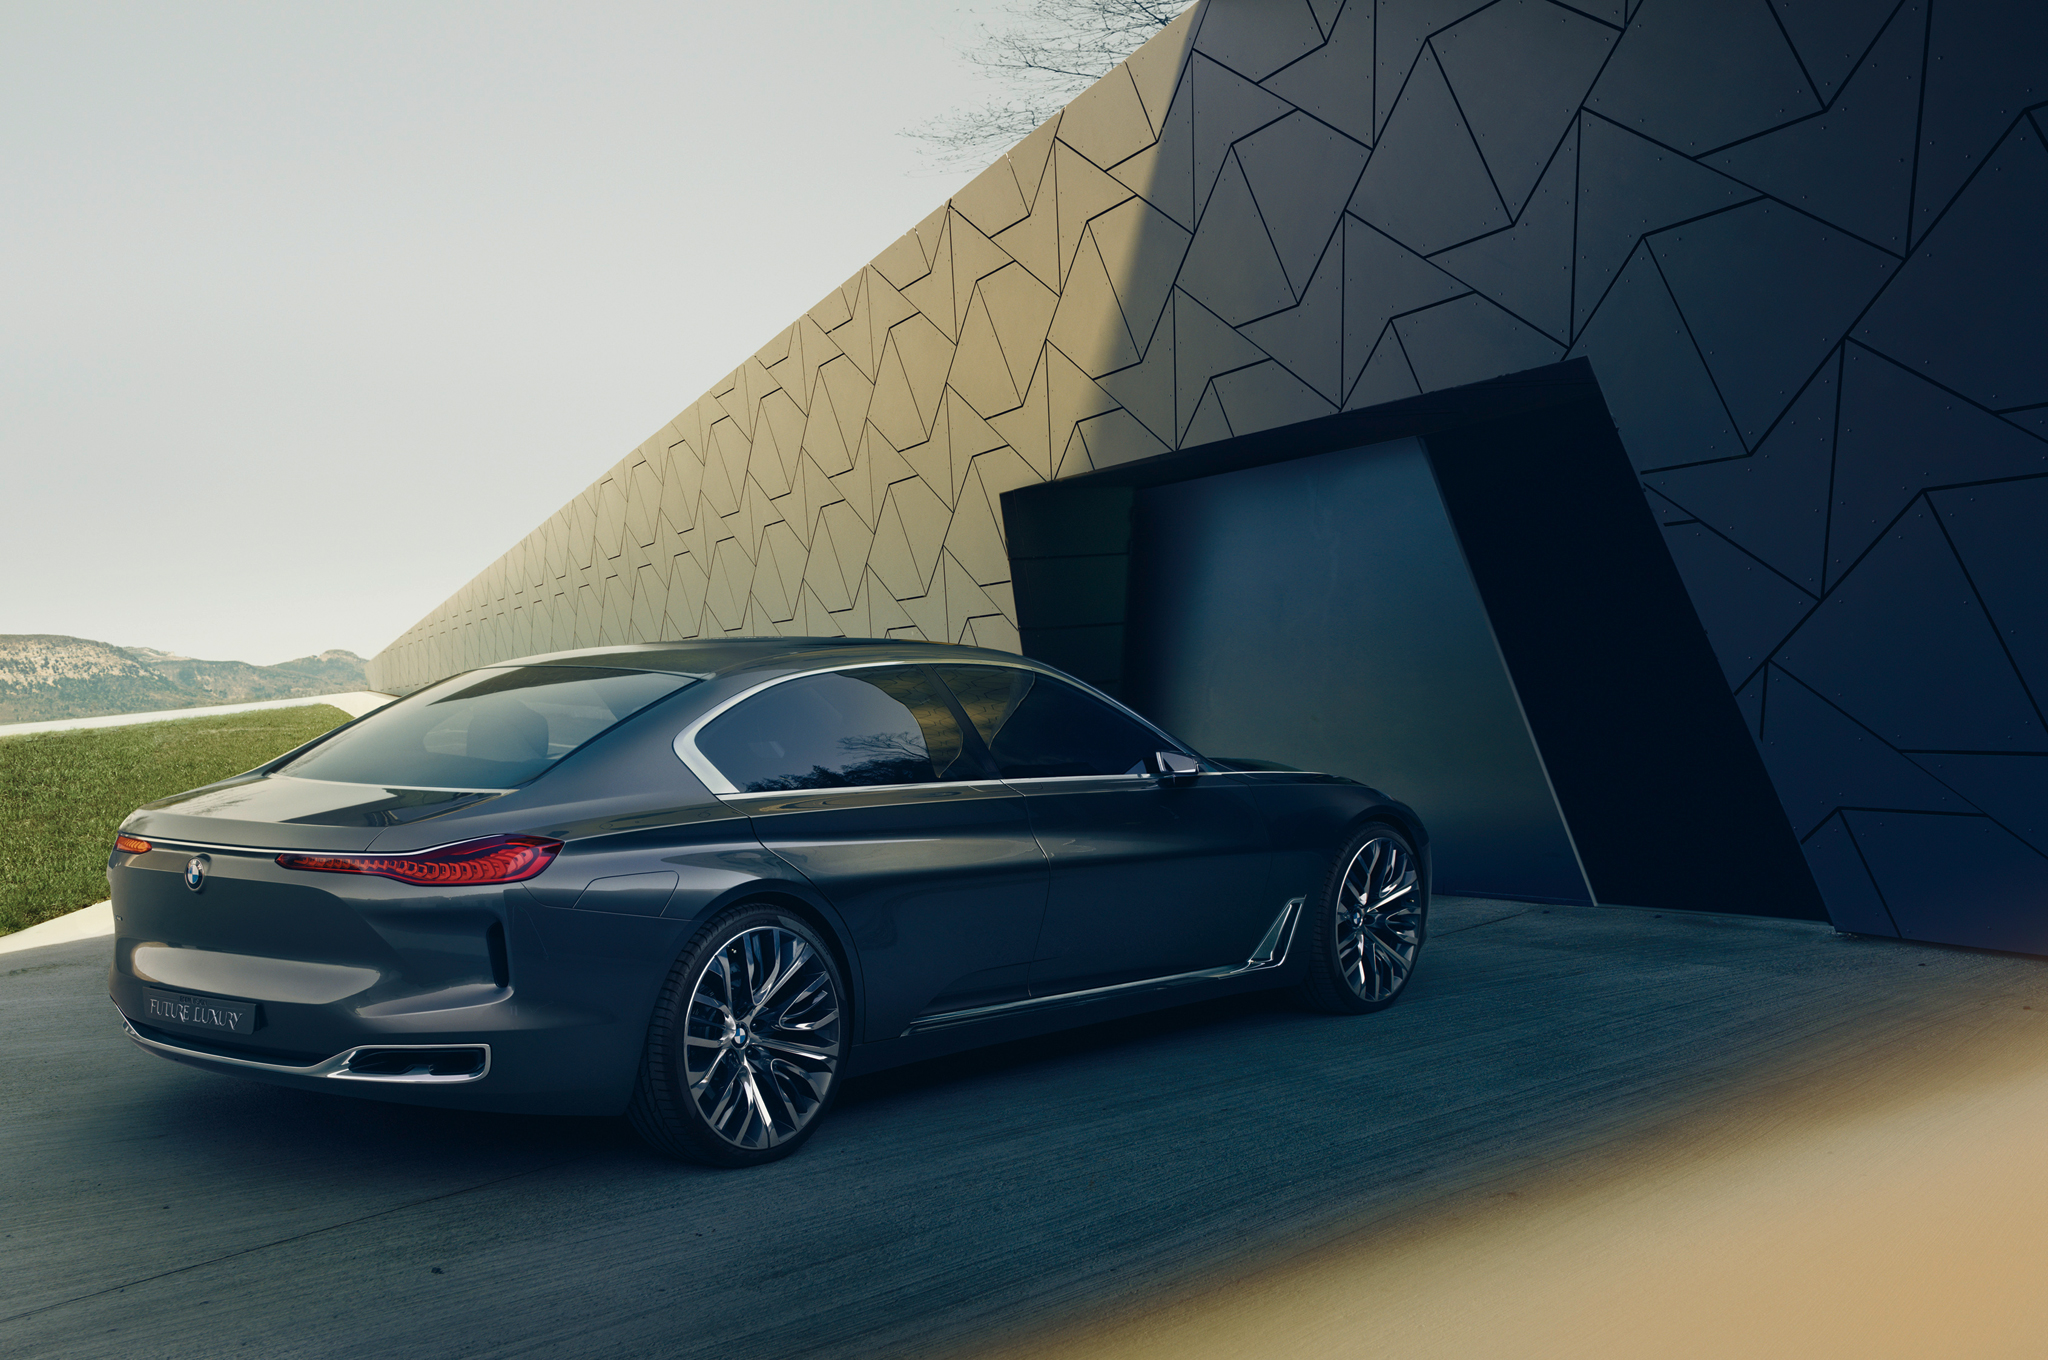 BMW Vision Future Luxury Concept Could Hint at New Flagship